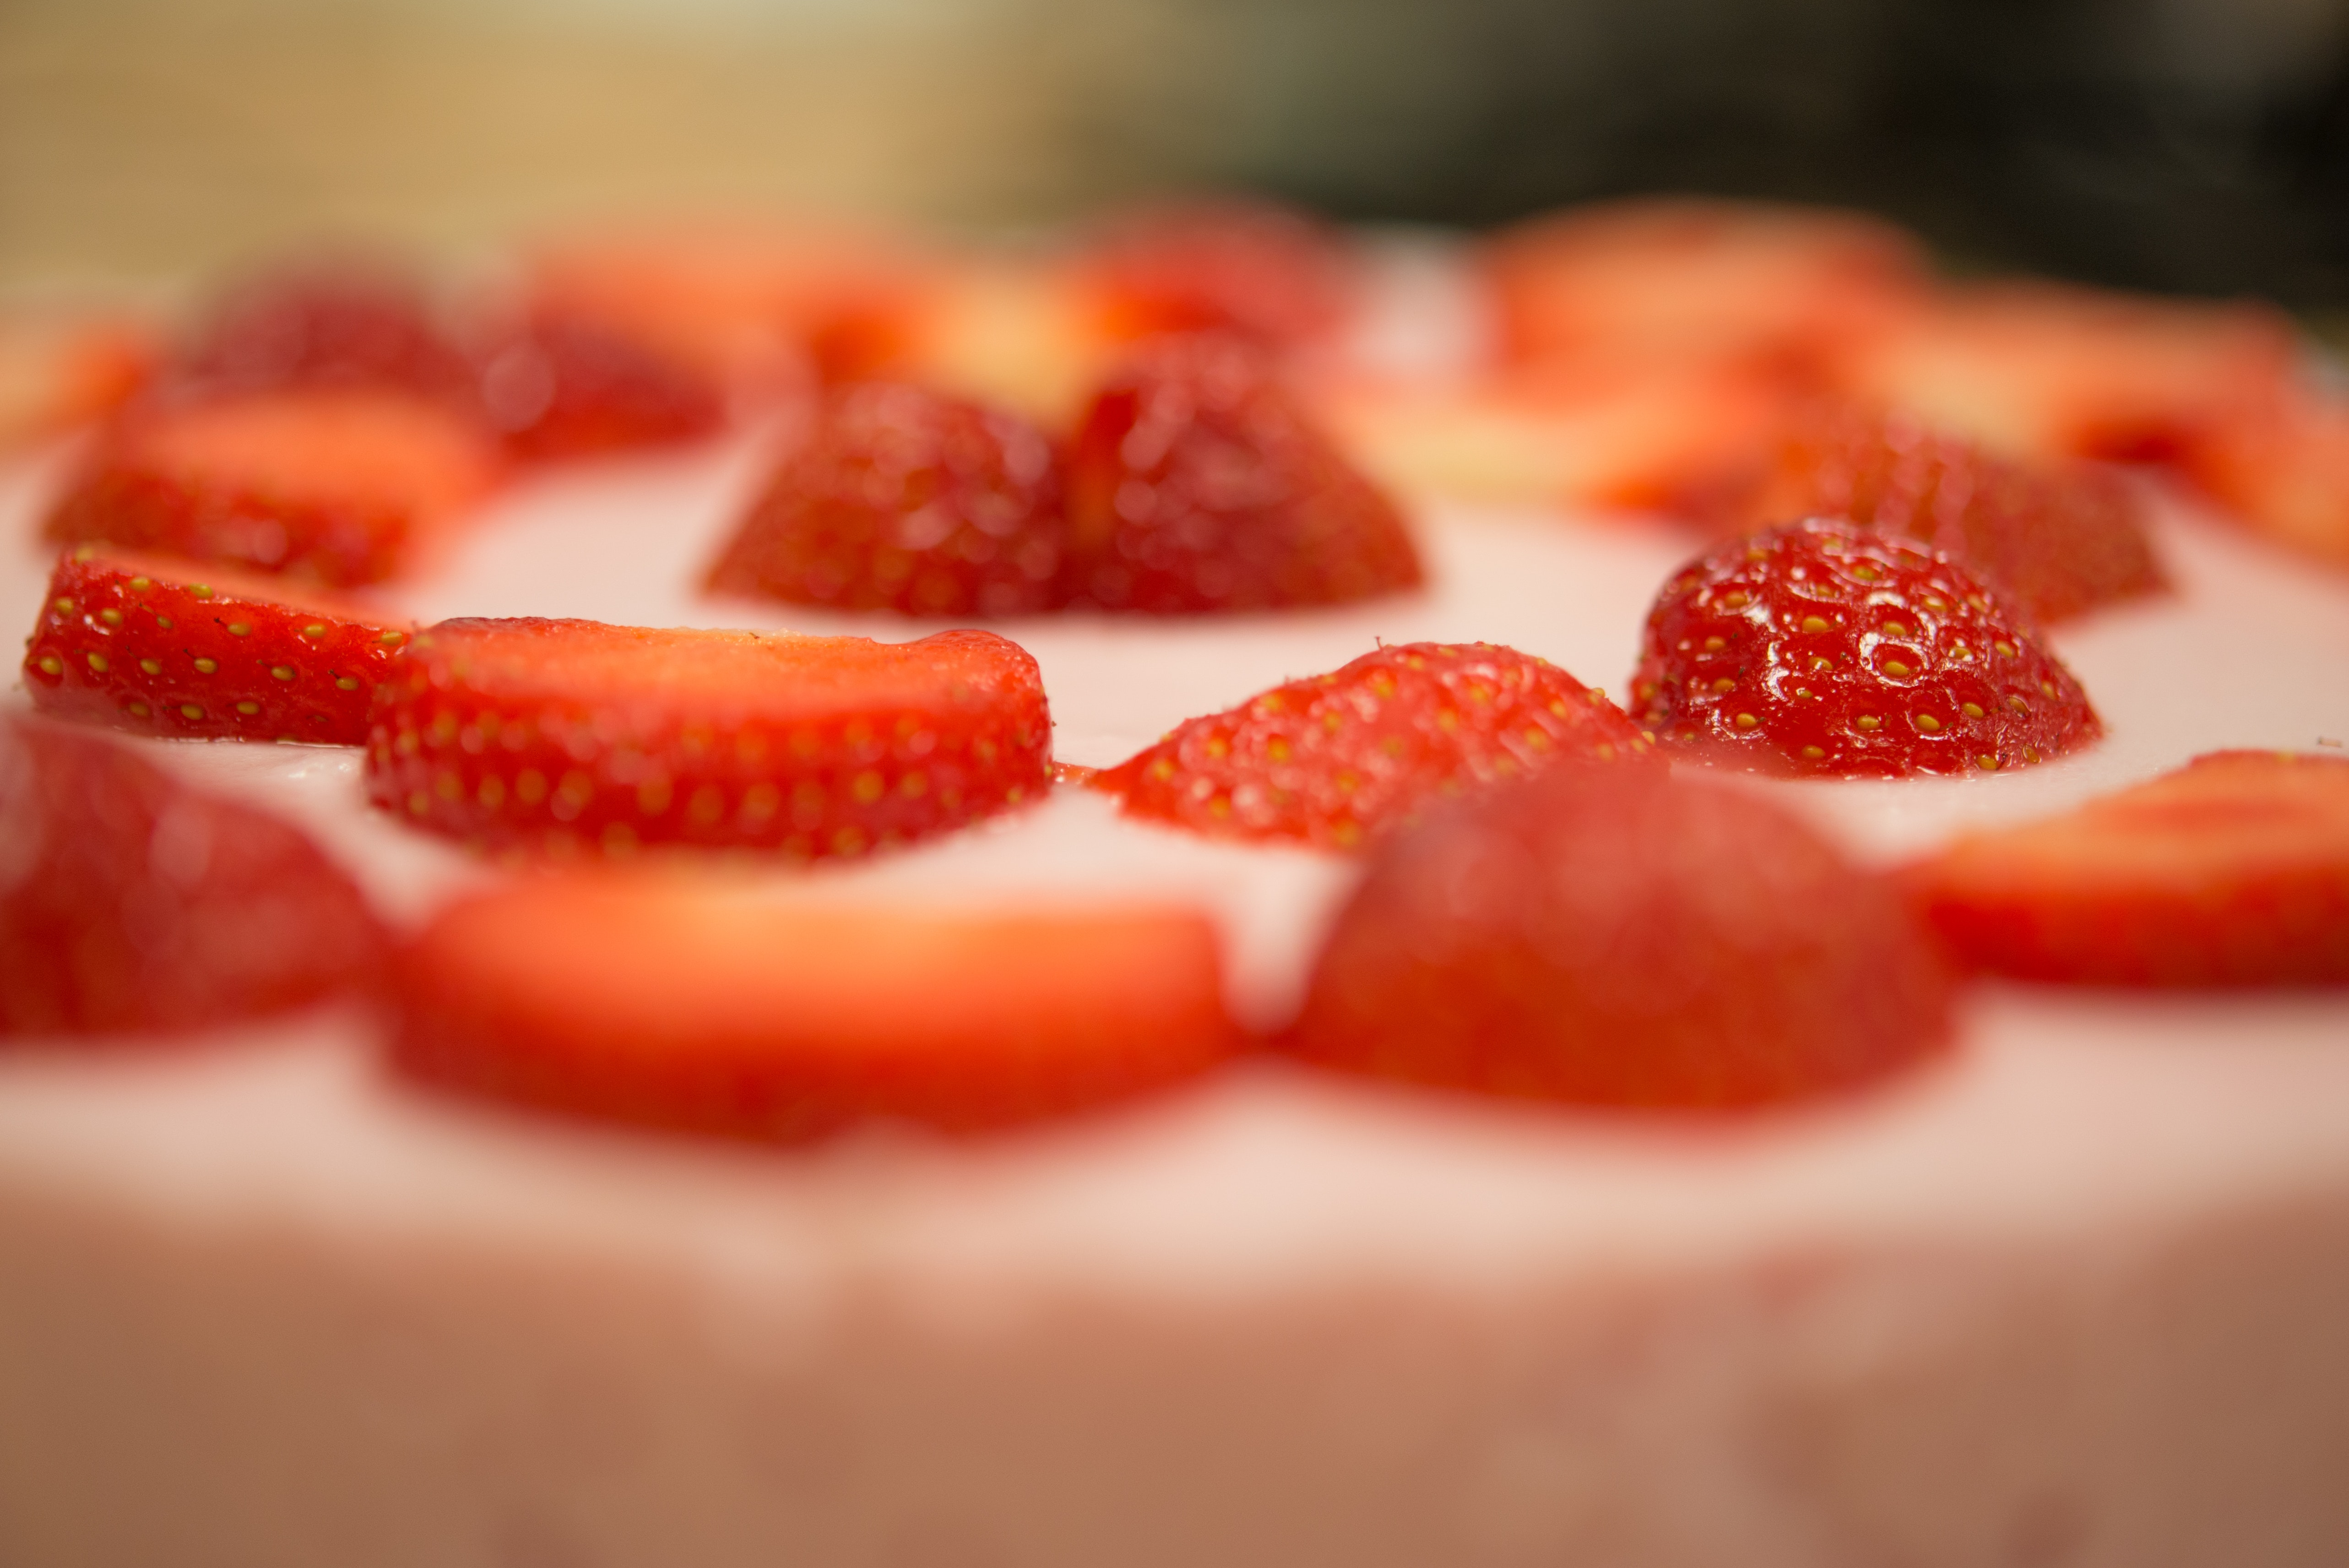 Strawberry Cake, Berries, Healthy, Sweetness, Sweet, HQ Photo